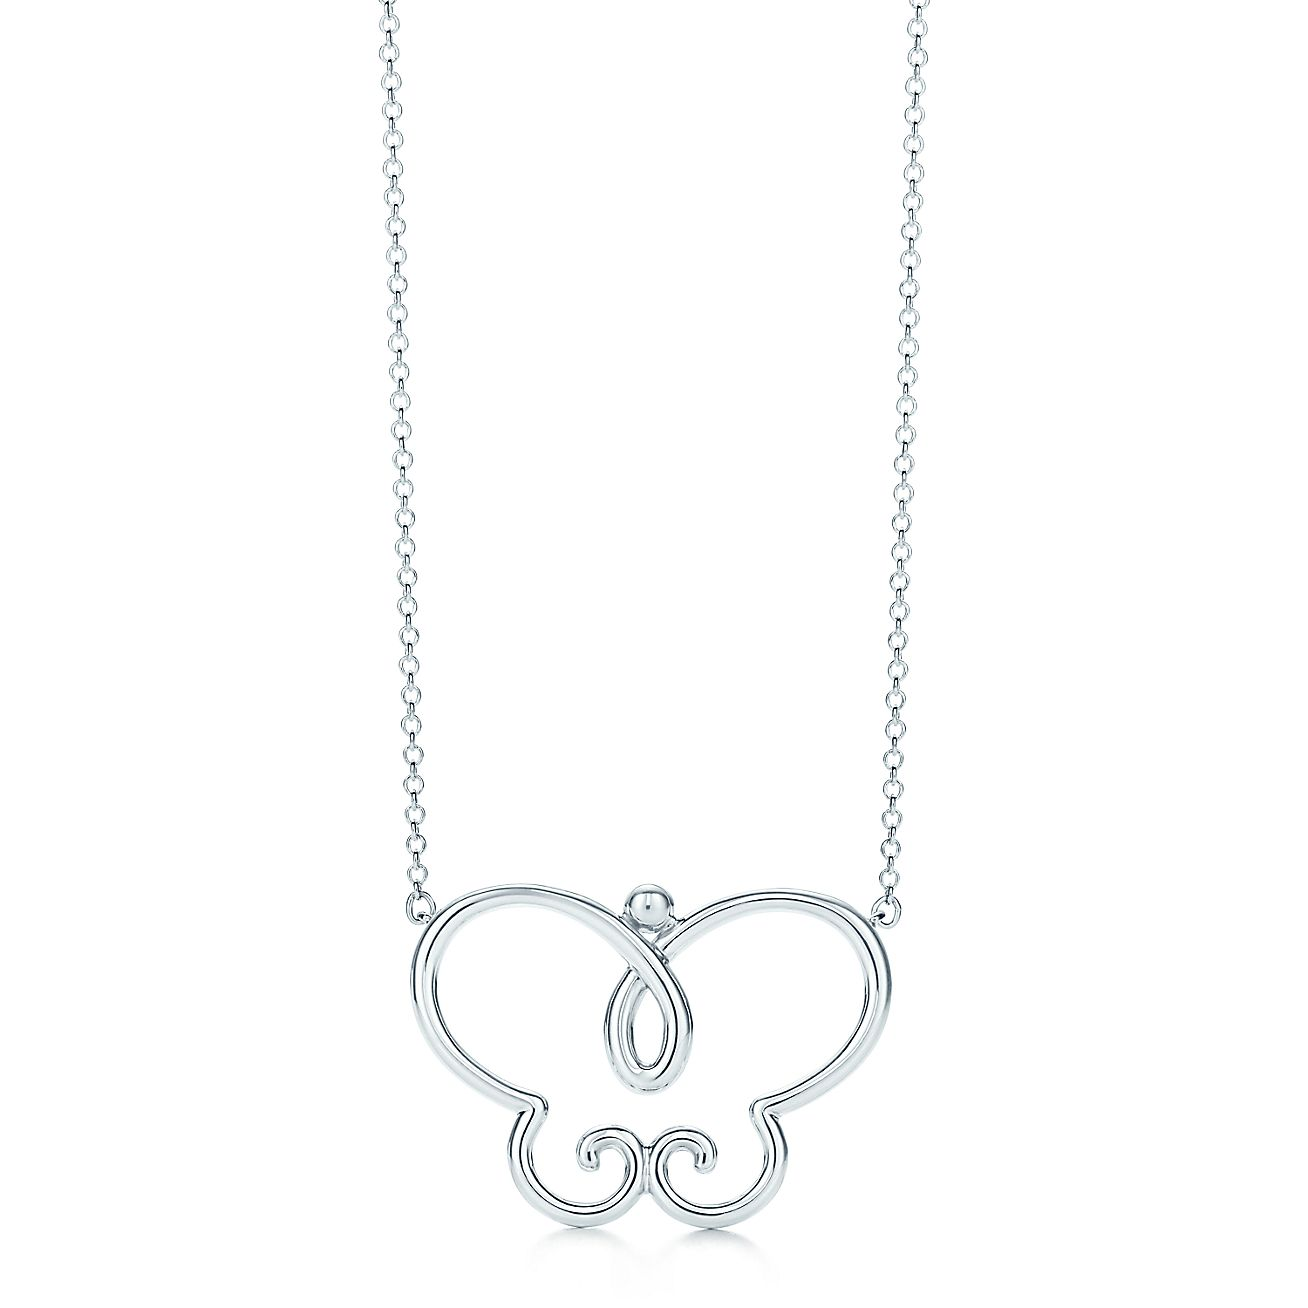 Villa Paloma butterfly pendant in sterling silver, large